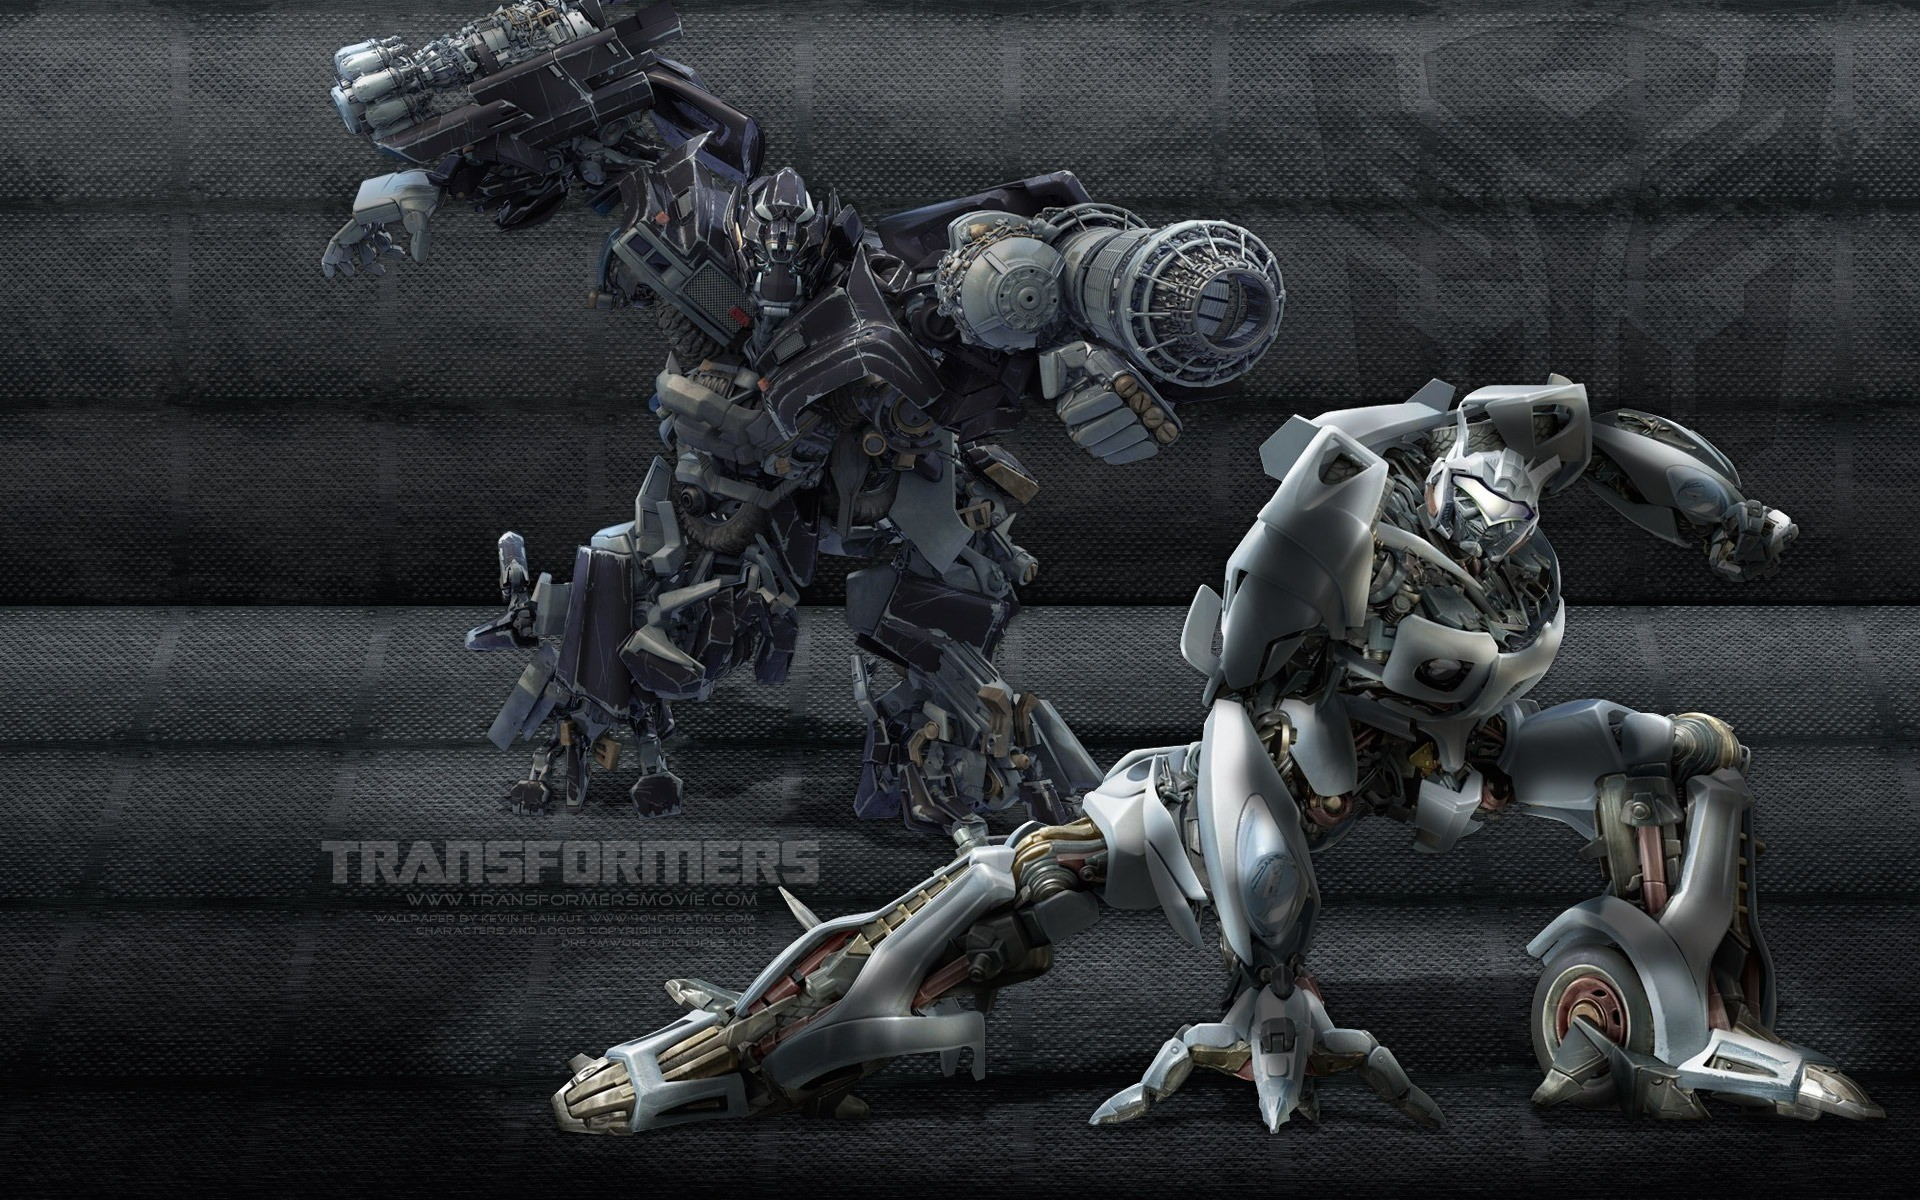 1920x1200 Ironhide Jazz Autobot Wallpaper Transformers Movies Wallpapers